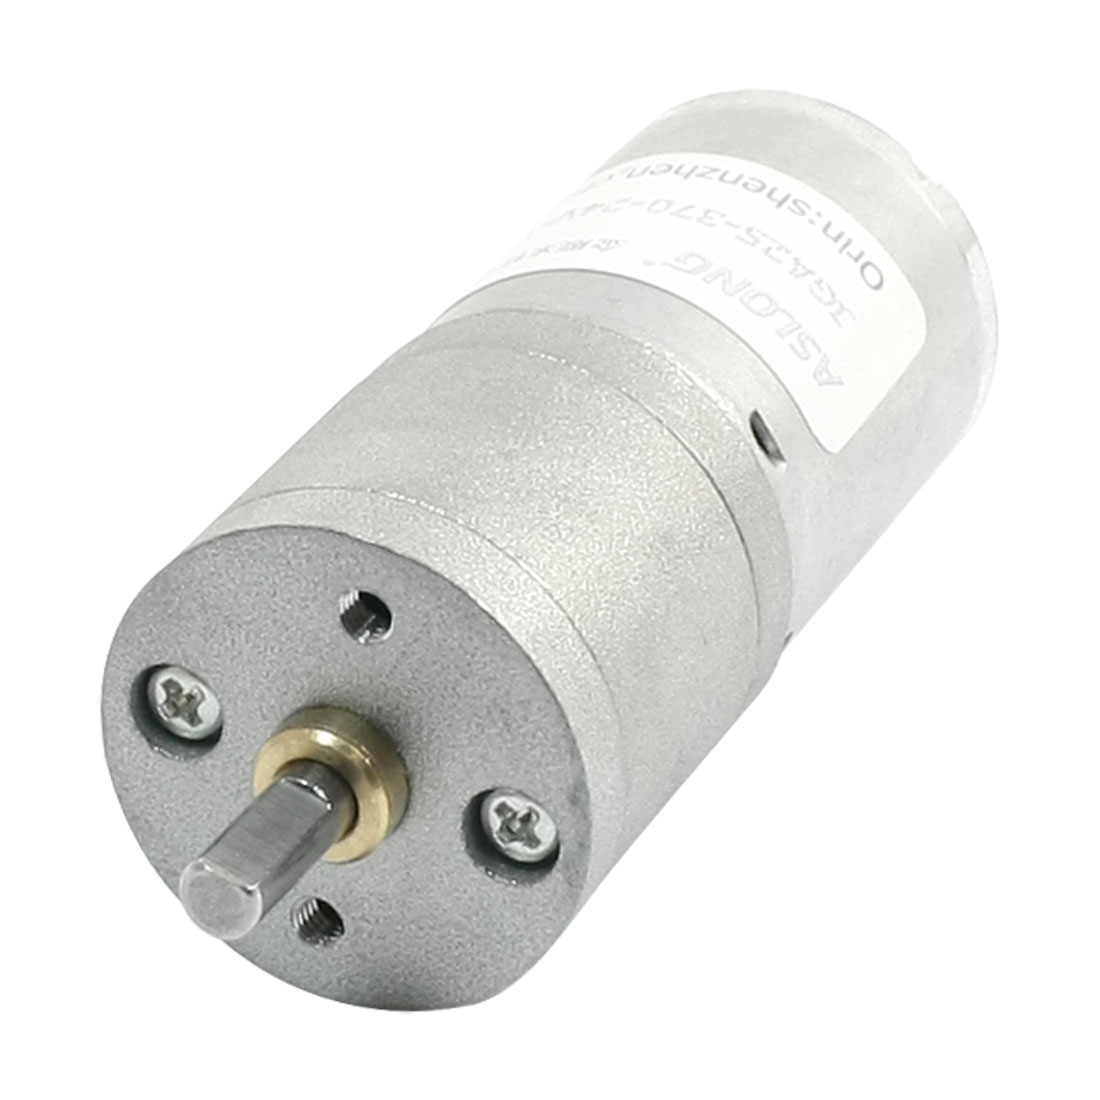 GA25-370 DC24V 10RPM 4mm Dia Shaft Cylindrical Speed Reduce Gear Motor